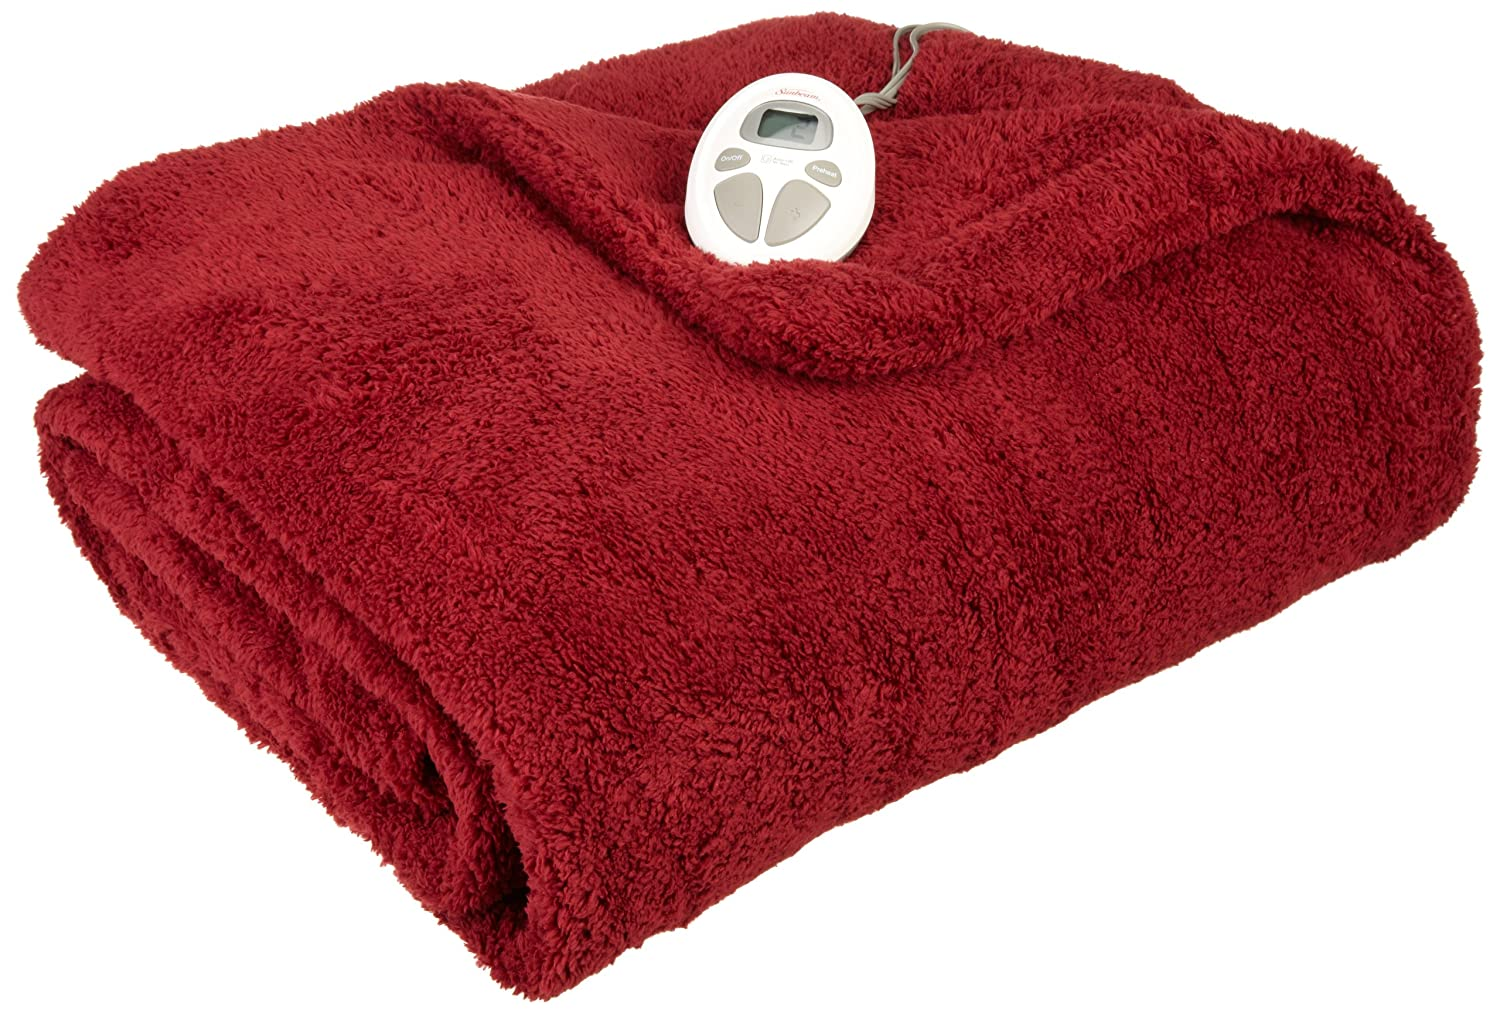 Sunbeam Heated Blanket | LoftTec, 10 Heat Settings, Garnet, Twin